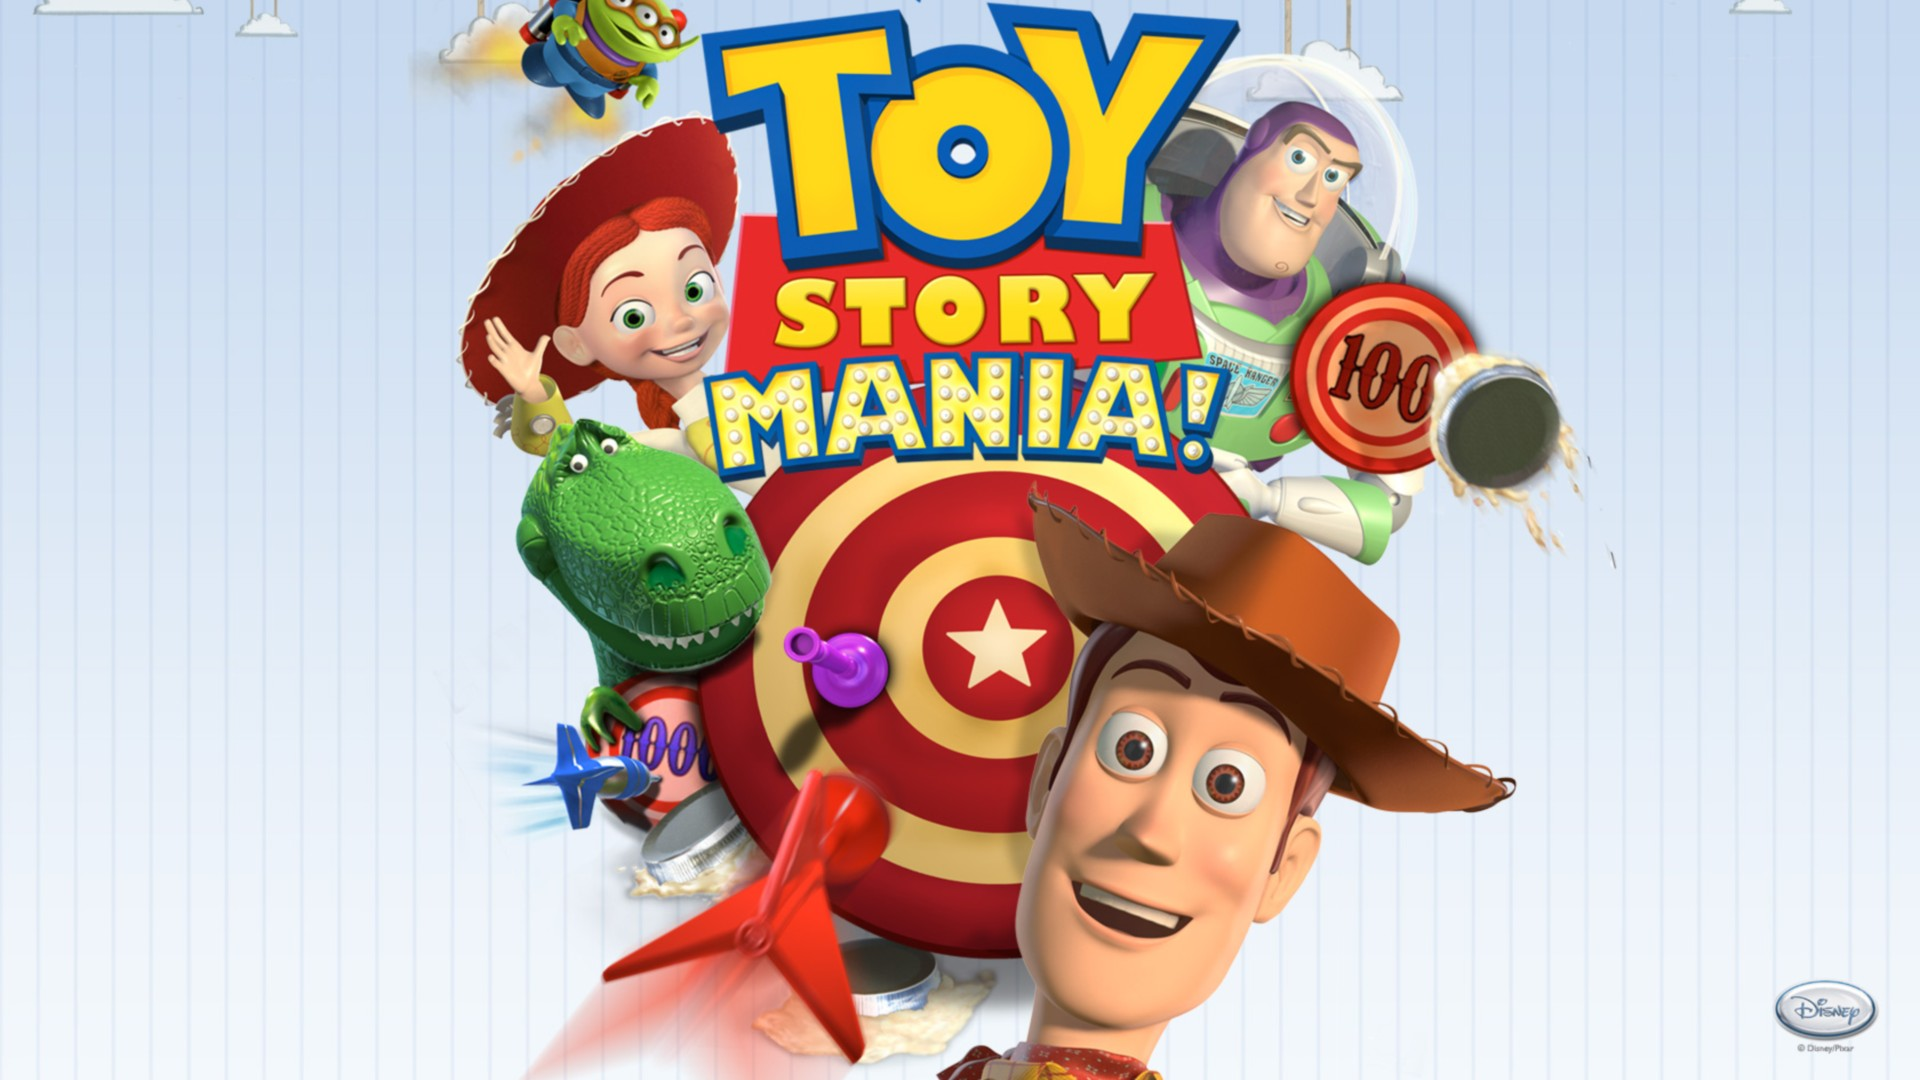 Toy story mania hd wallpaper background image - Toy story wallpaper ...